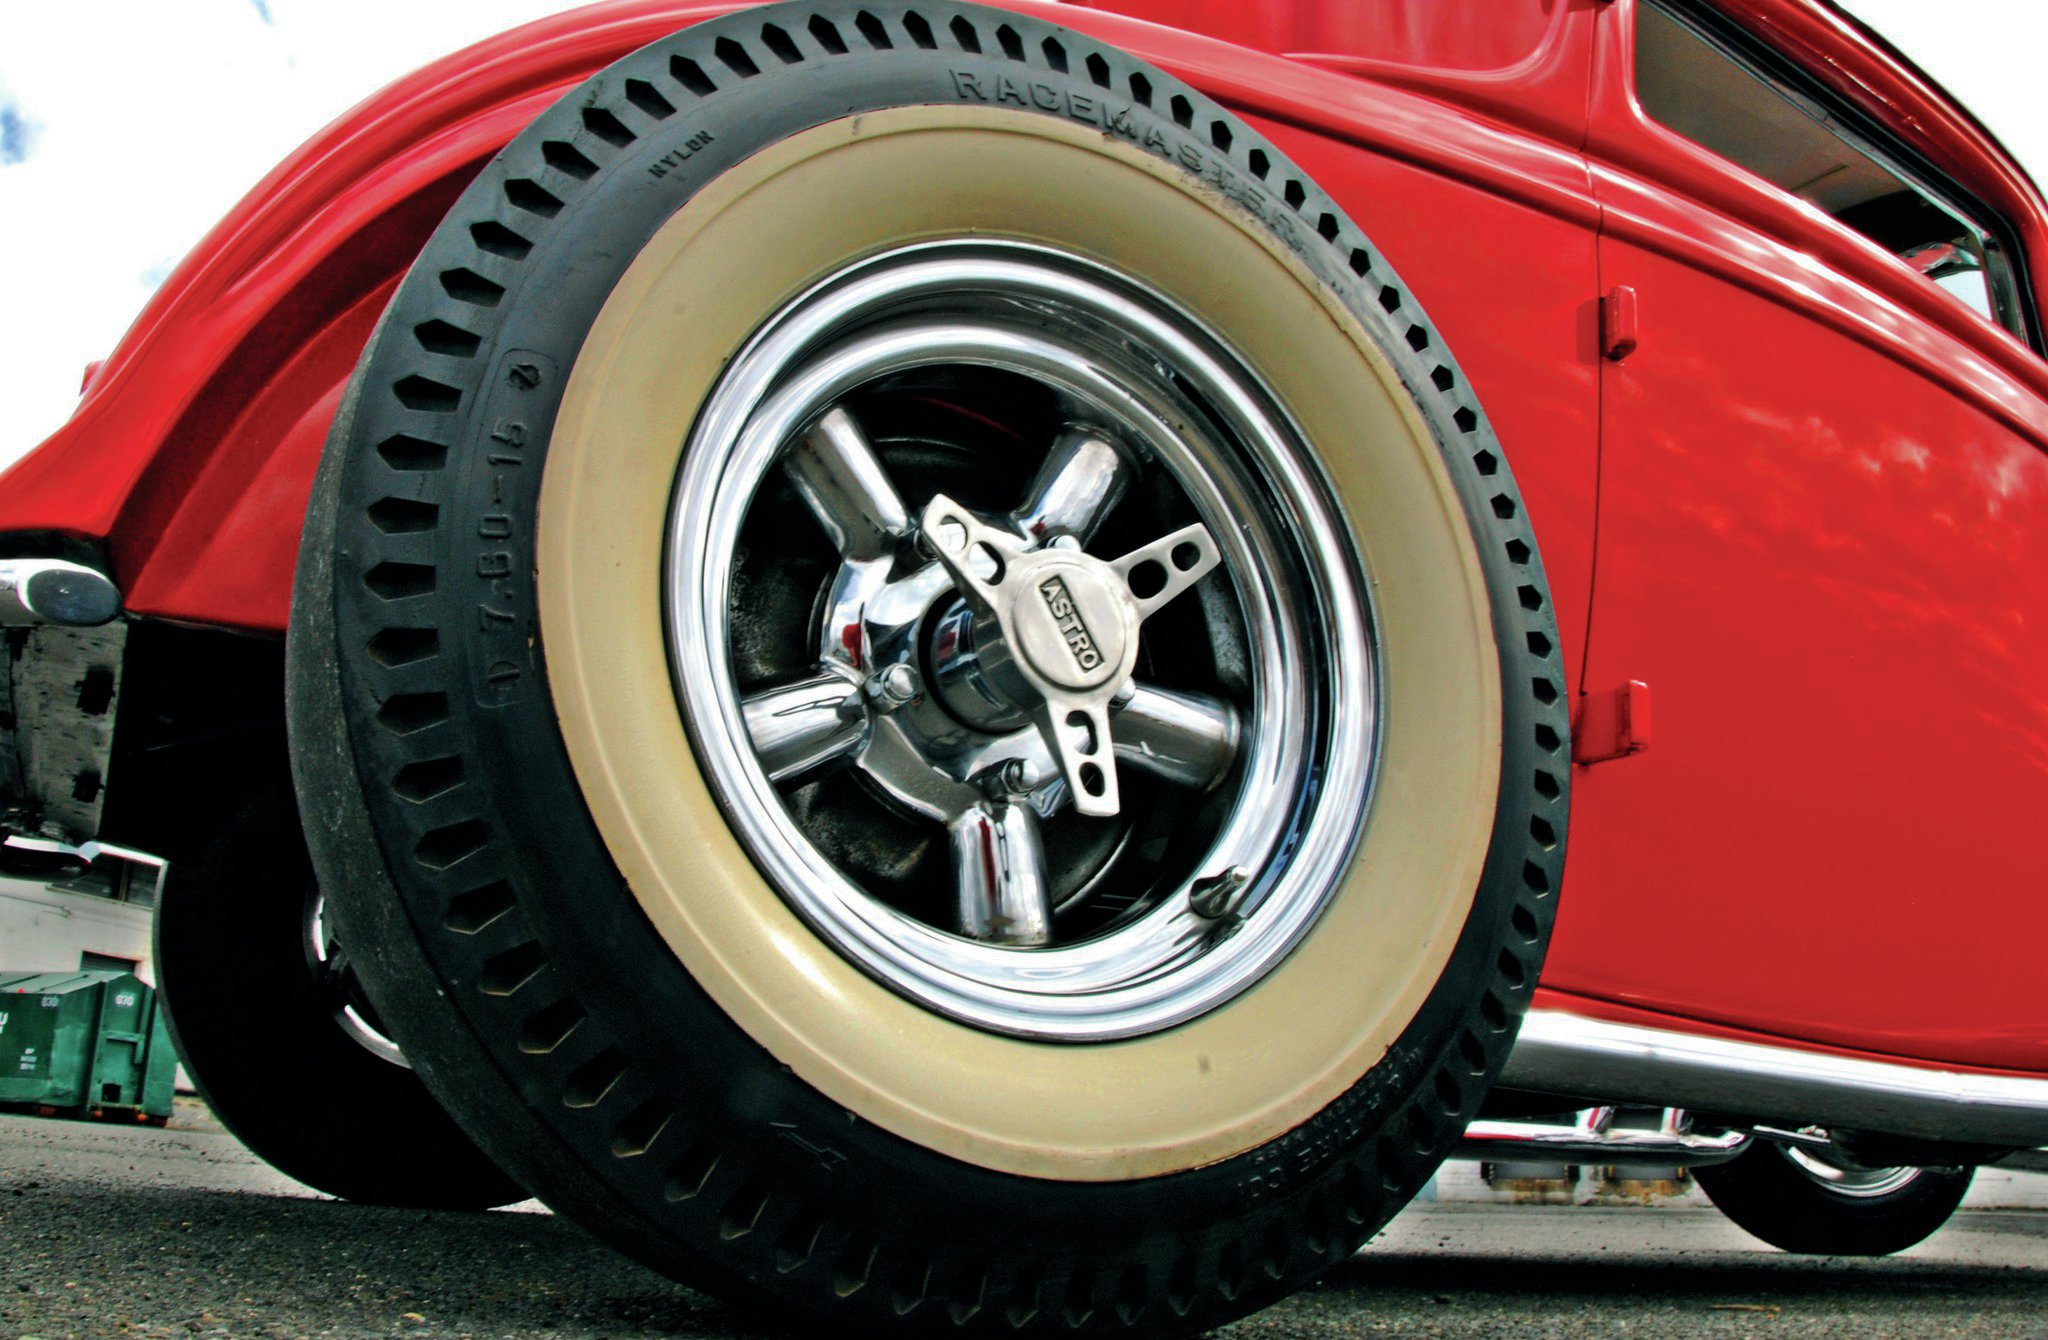 These Astro wheels were the last of several rims used on the coupe over the years. The Racemaster slicks out back and front-mounted Sport Special bias plies were installed in the late '50s and are still in usable shape.